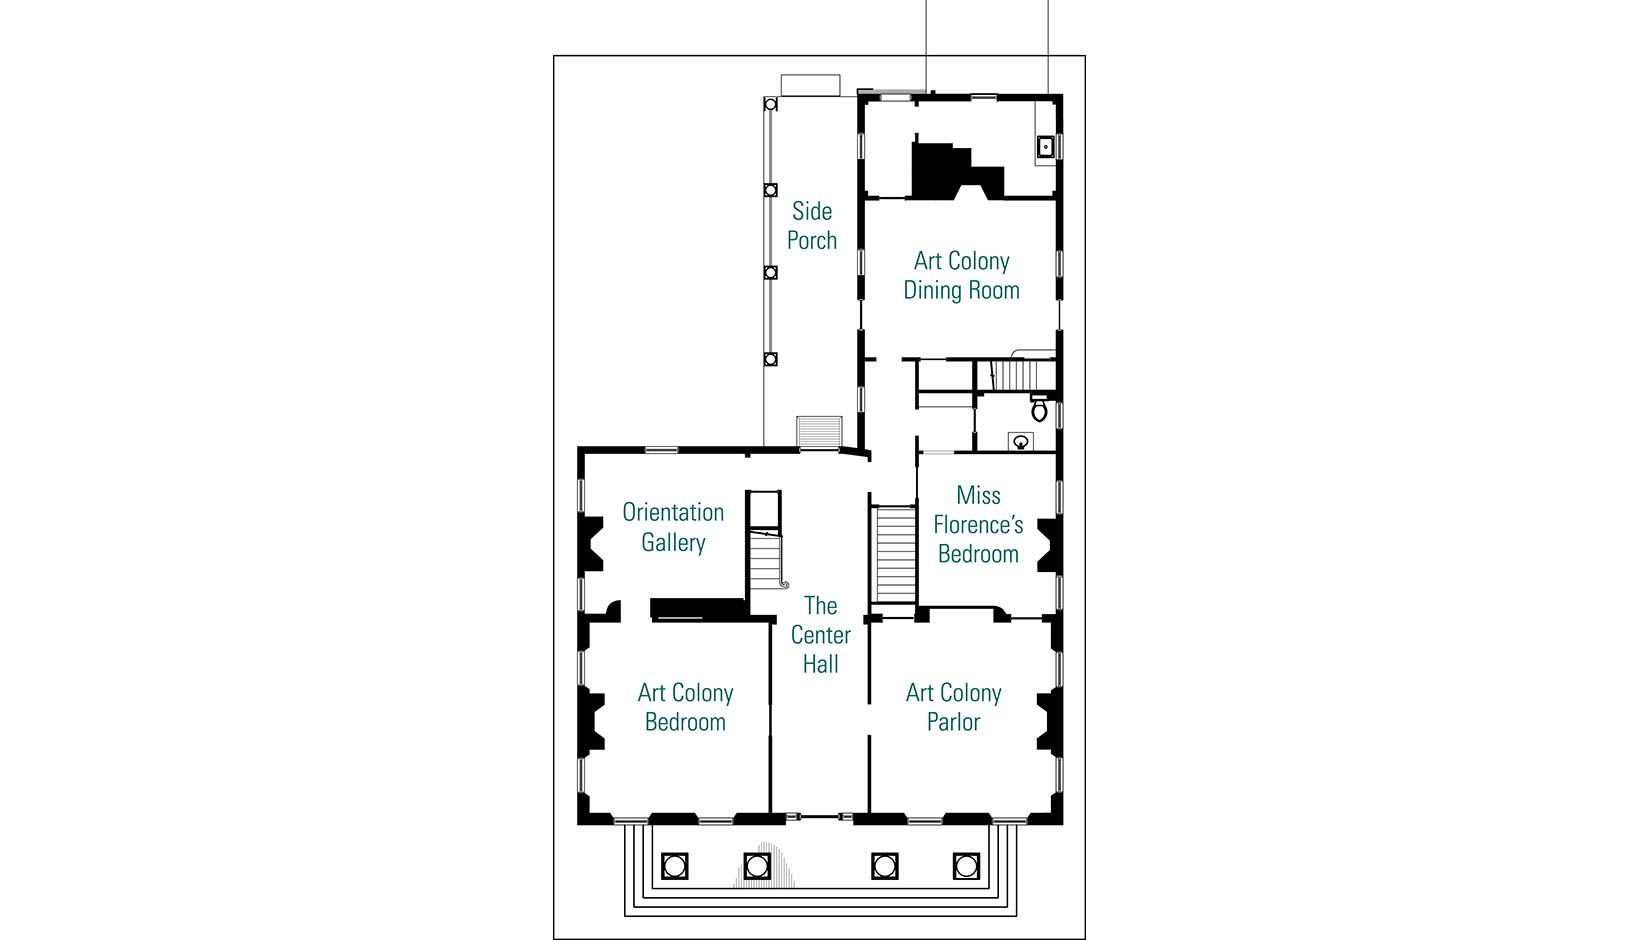 Boarding House Floor Plan Interior